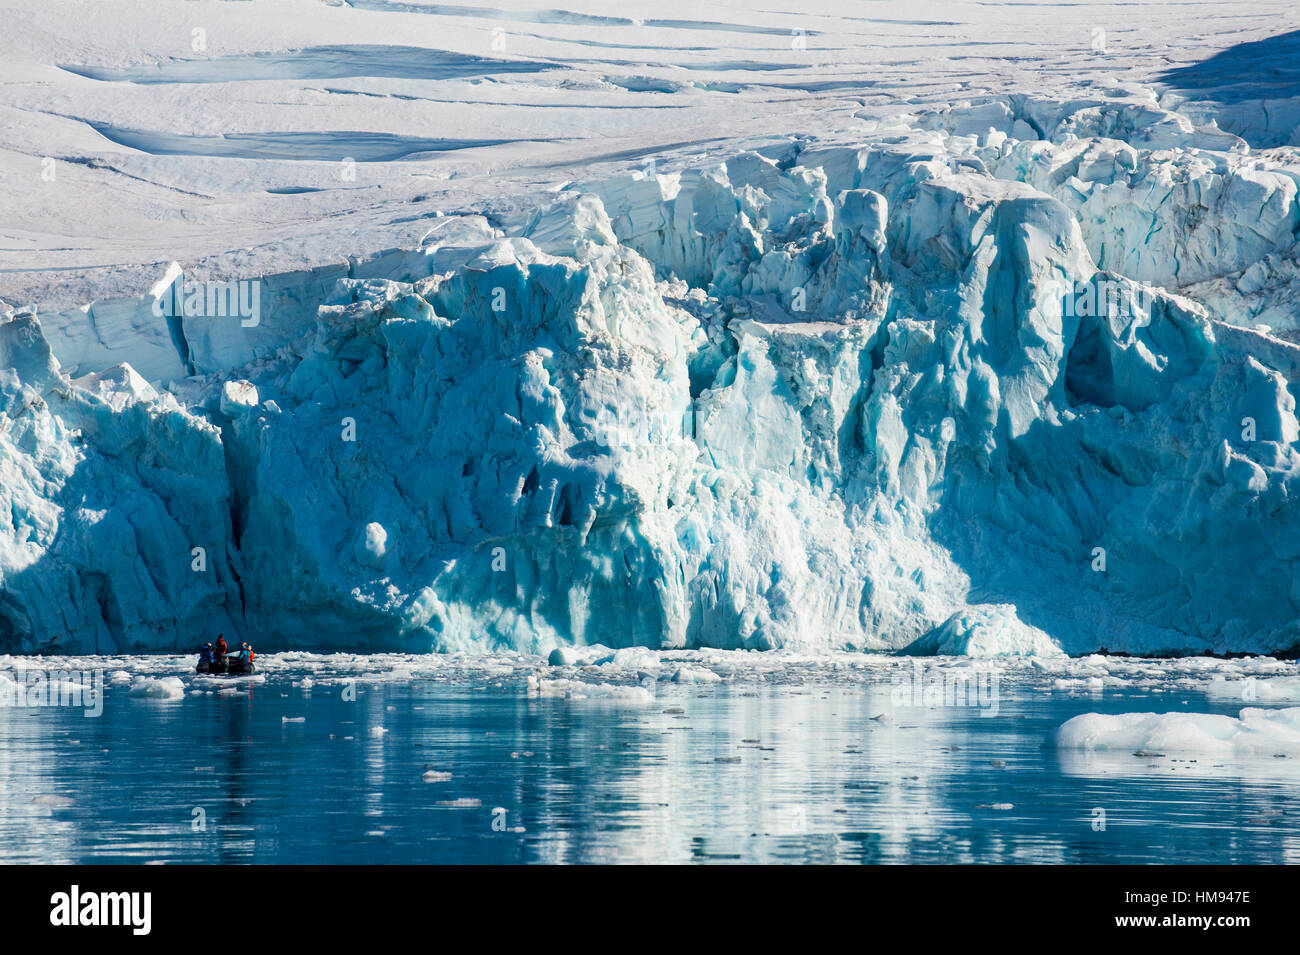 Zodiac with tourists cruising in front of a huge glacier, Hope Bay, Antarctica, Polar Regions - Stock Image